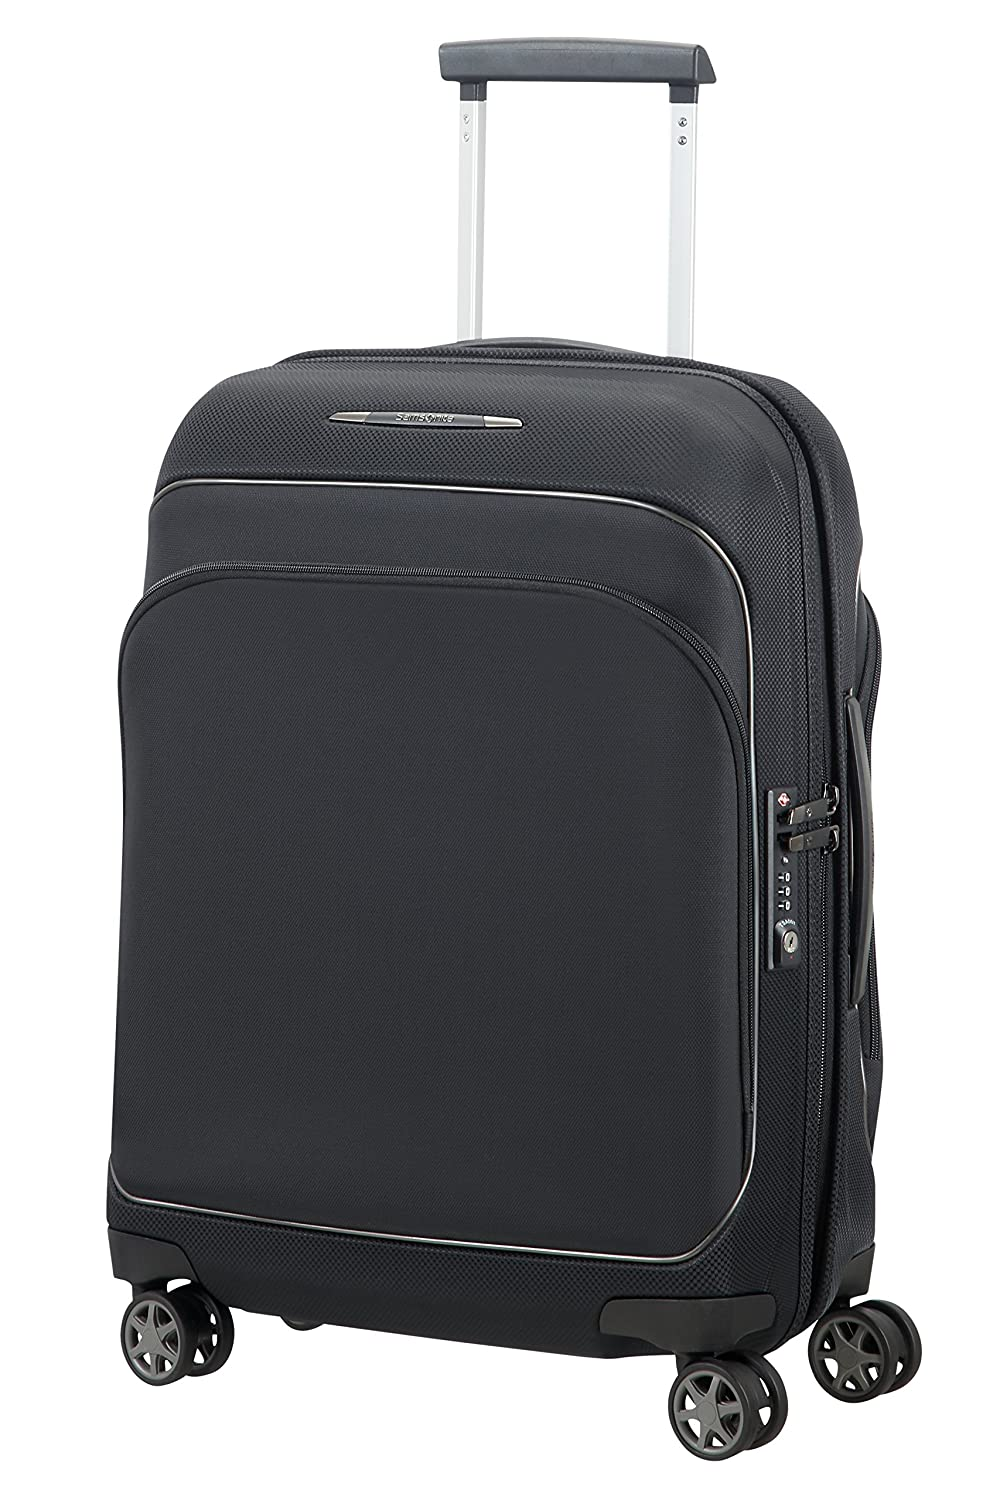 SAMSONITE Fuze - Spinner 55/20 Equipaje de Mano, 55 cm, 35 Liters, Negro (Black): Amazon.es: Equipaje